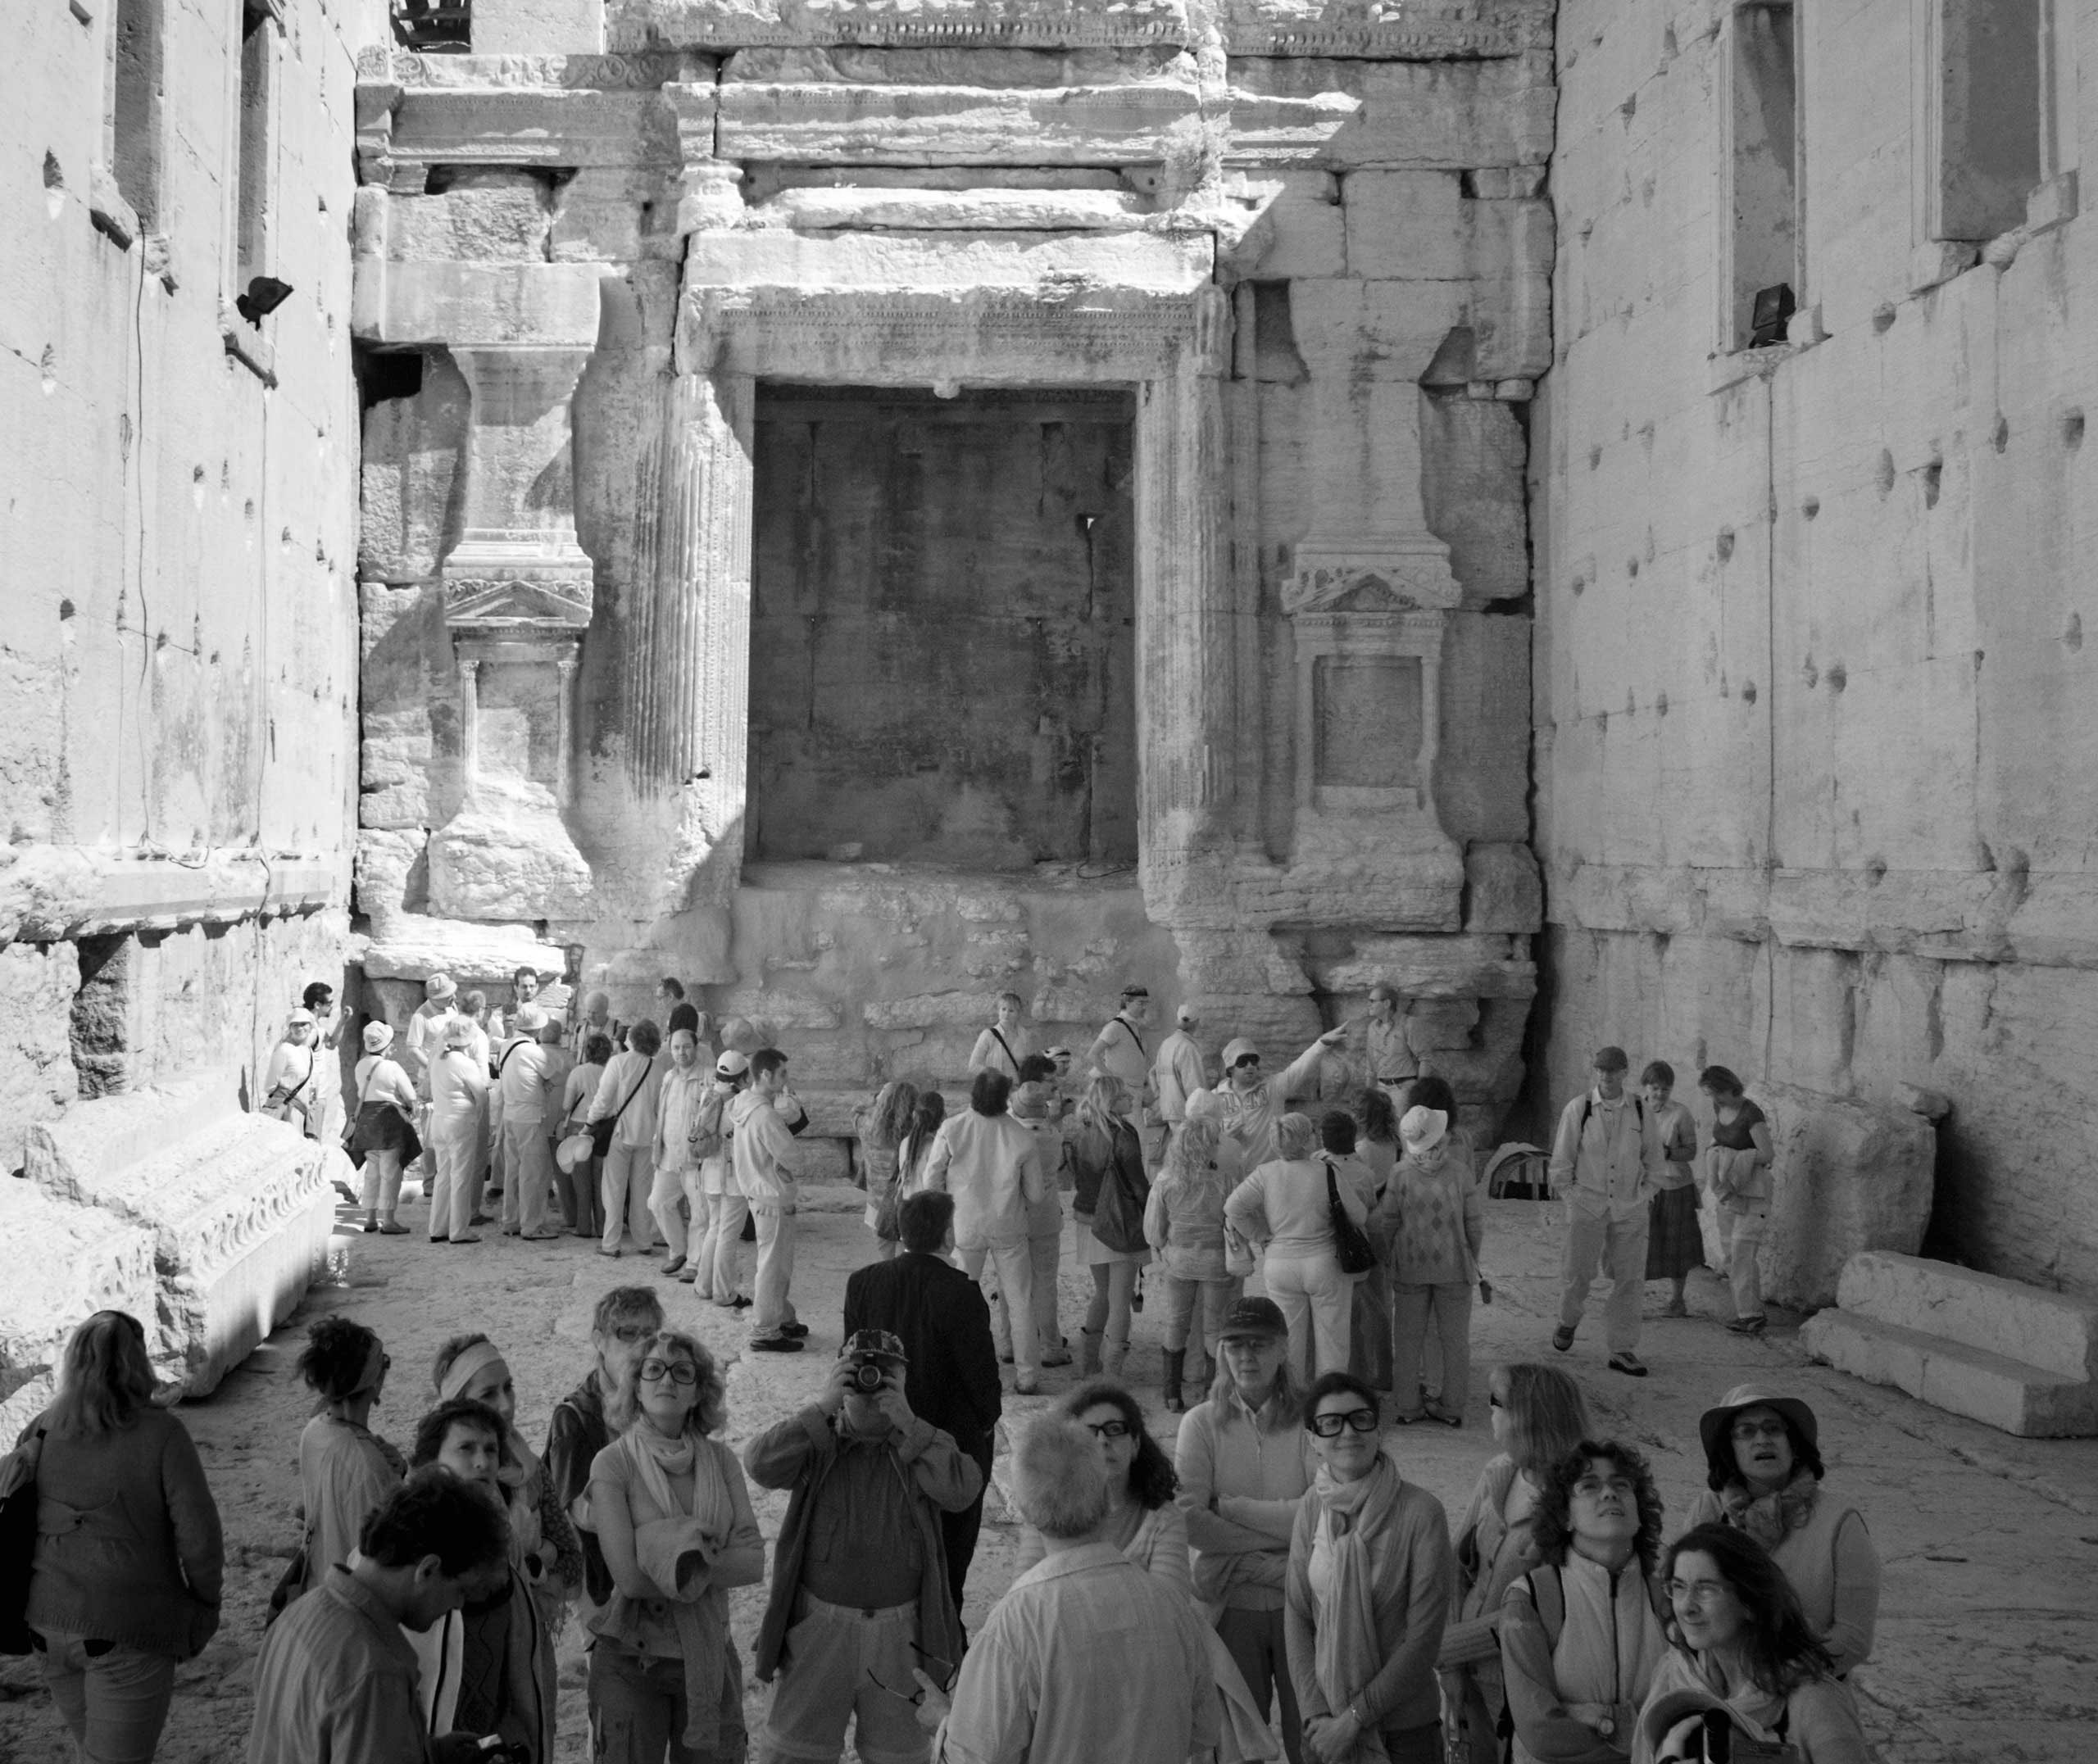 Tourists visit the site of the Temple of Bel ruins in Palmyra.